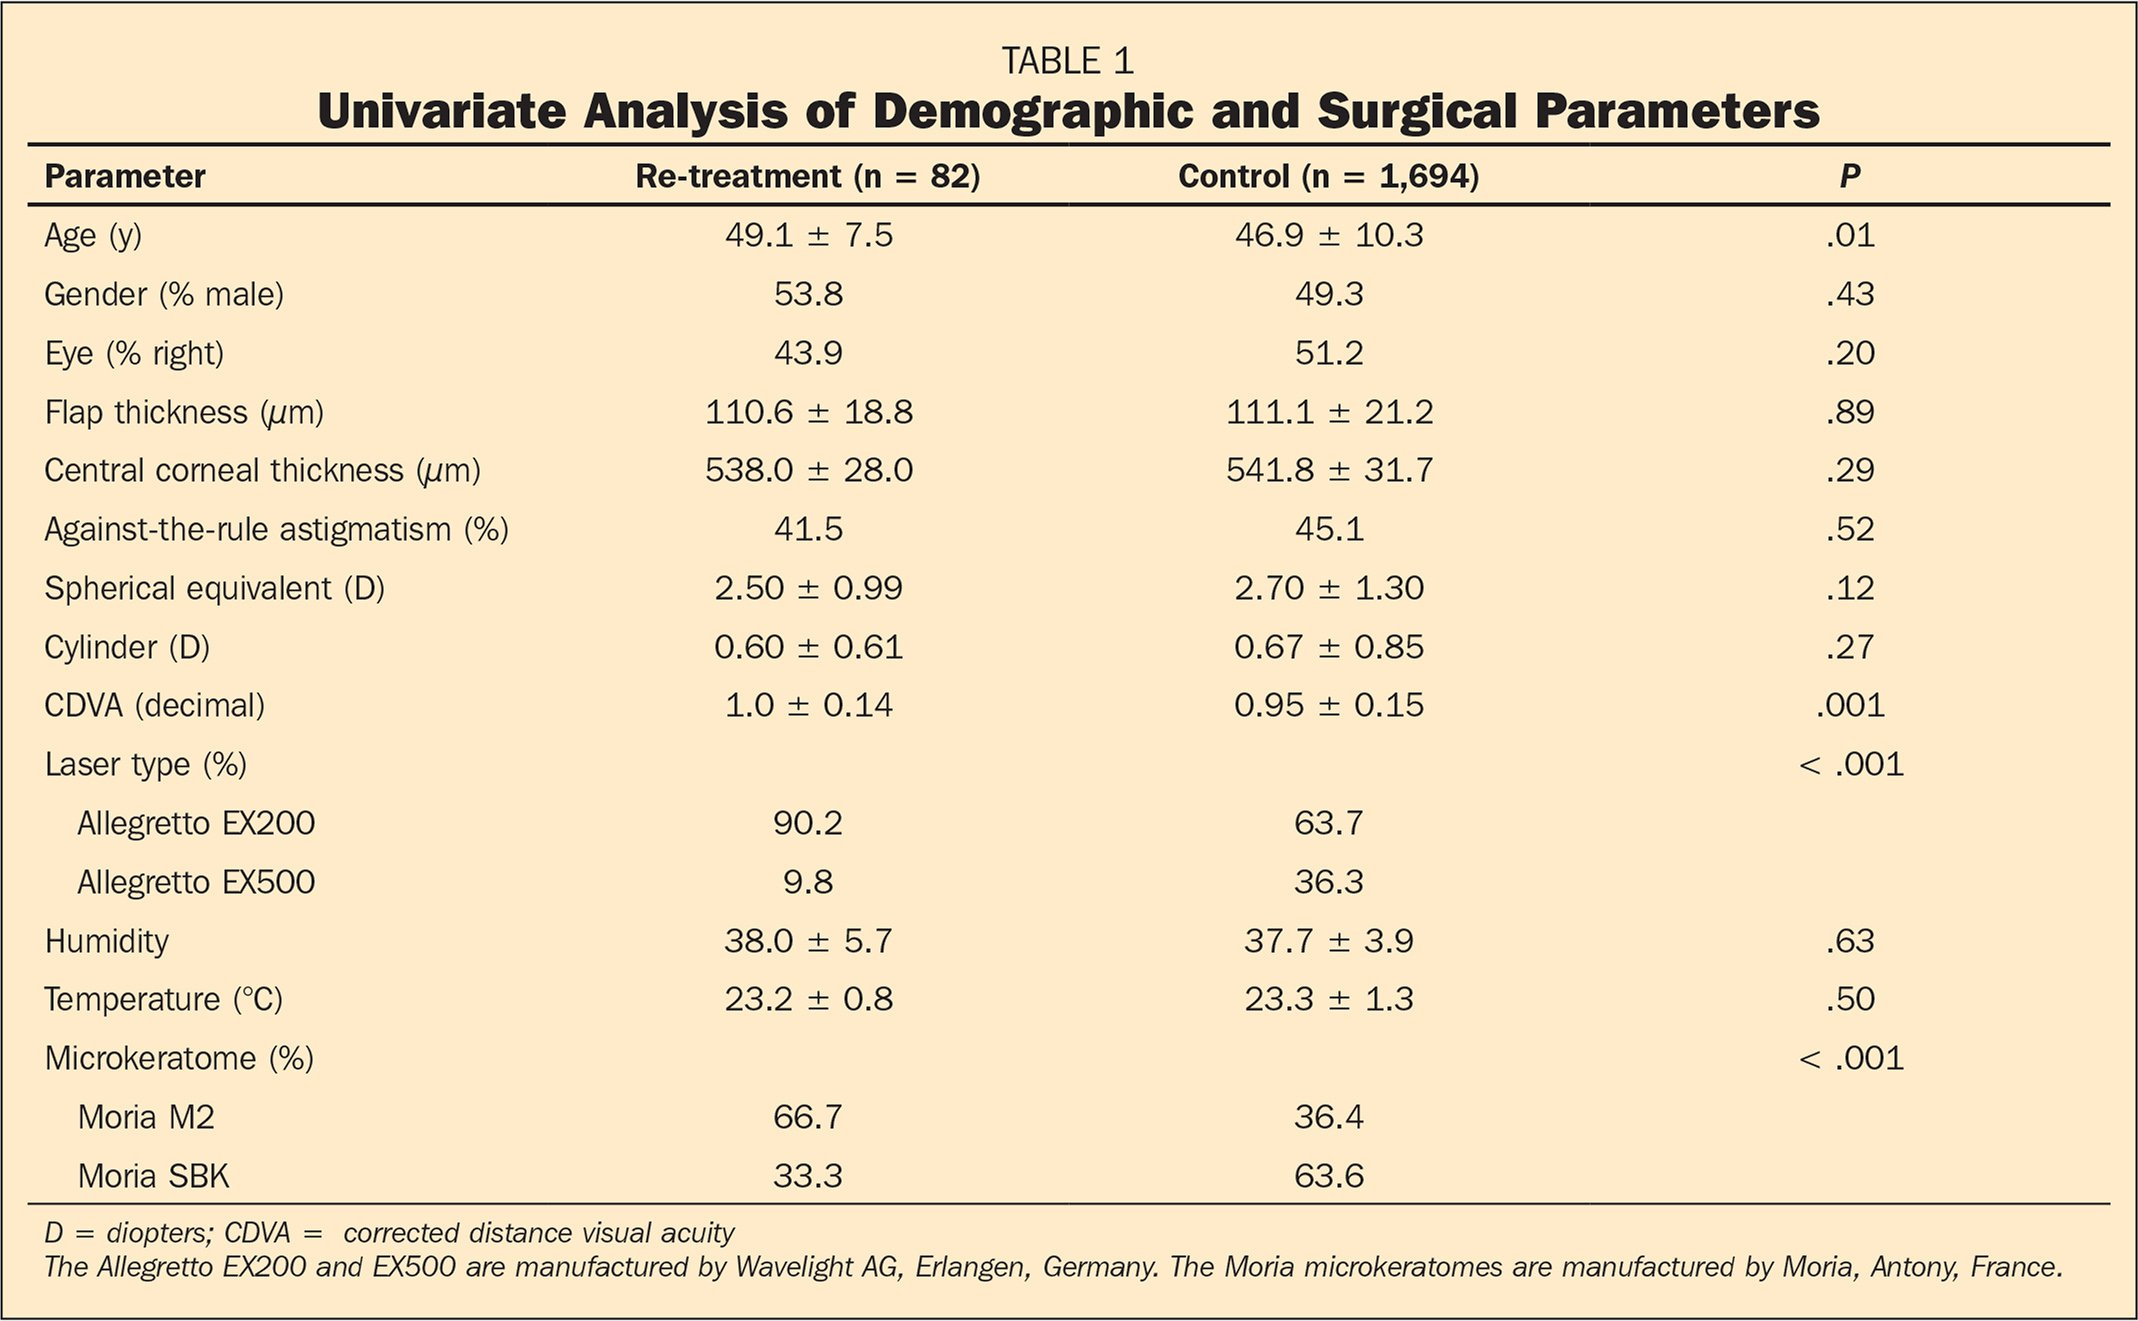 Univariate Analysis of Demographic and Surgical Parameters